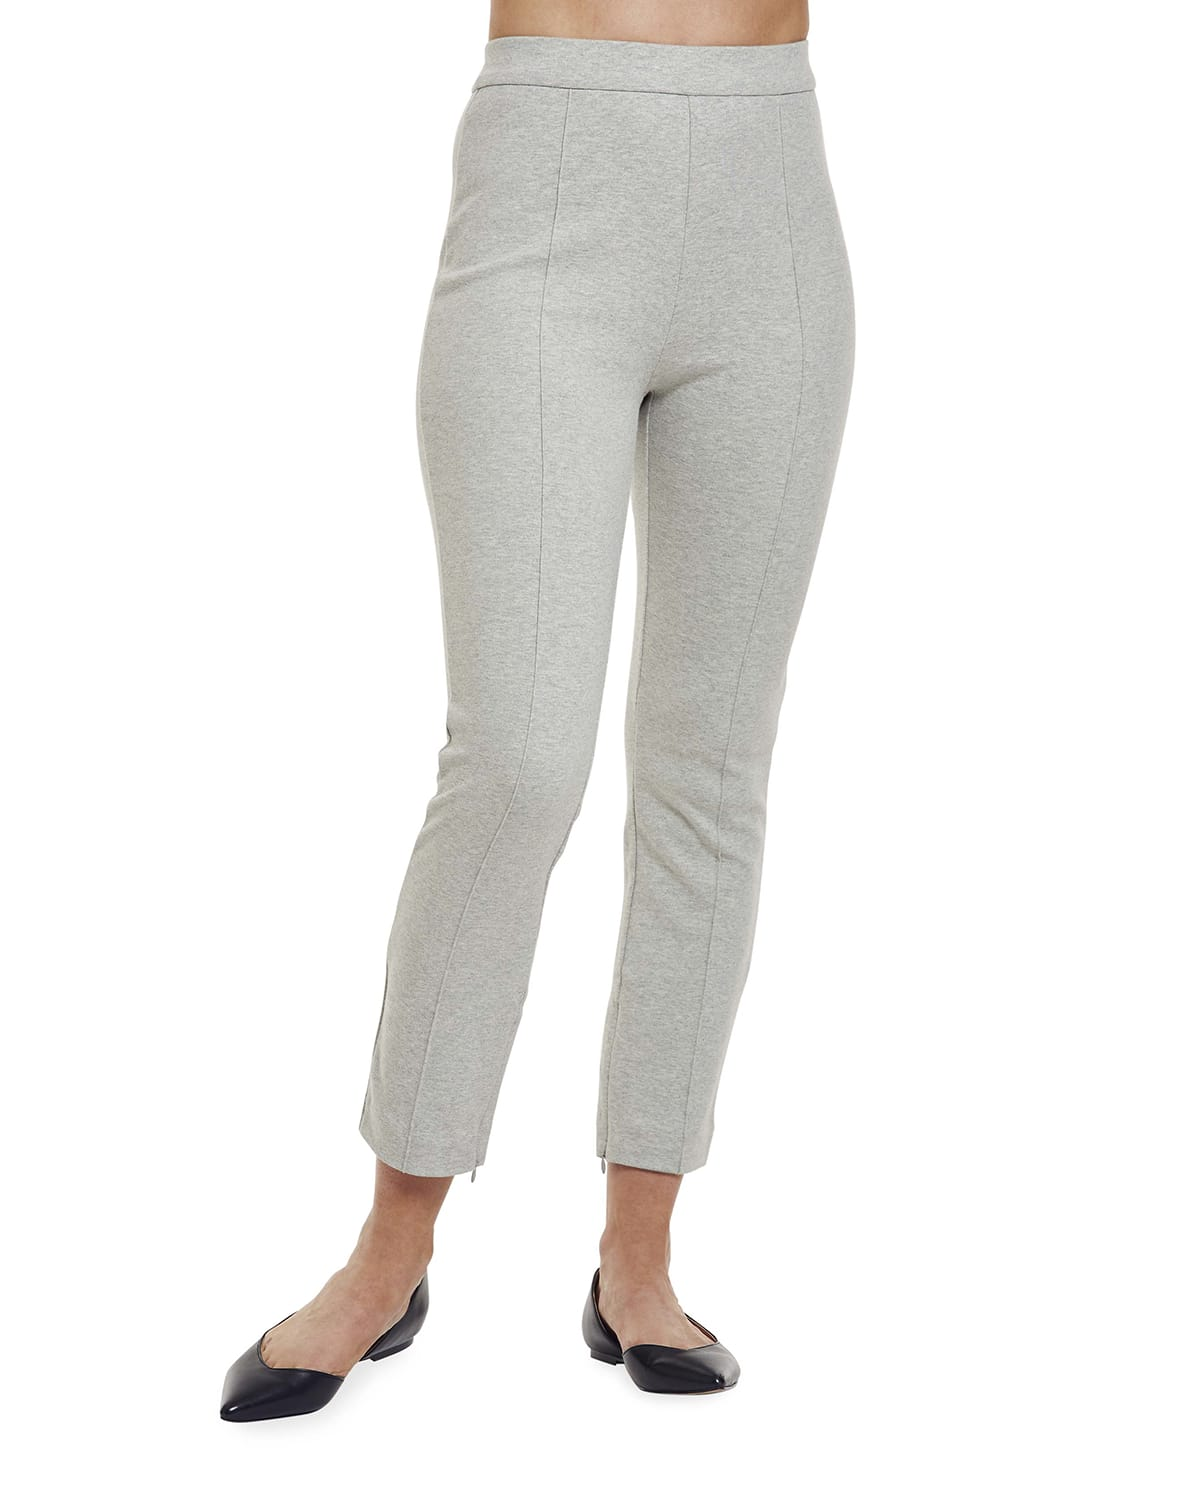 Ankle Pants with Front Seam Detail